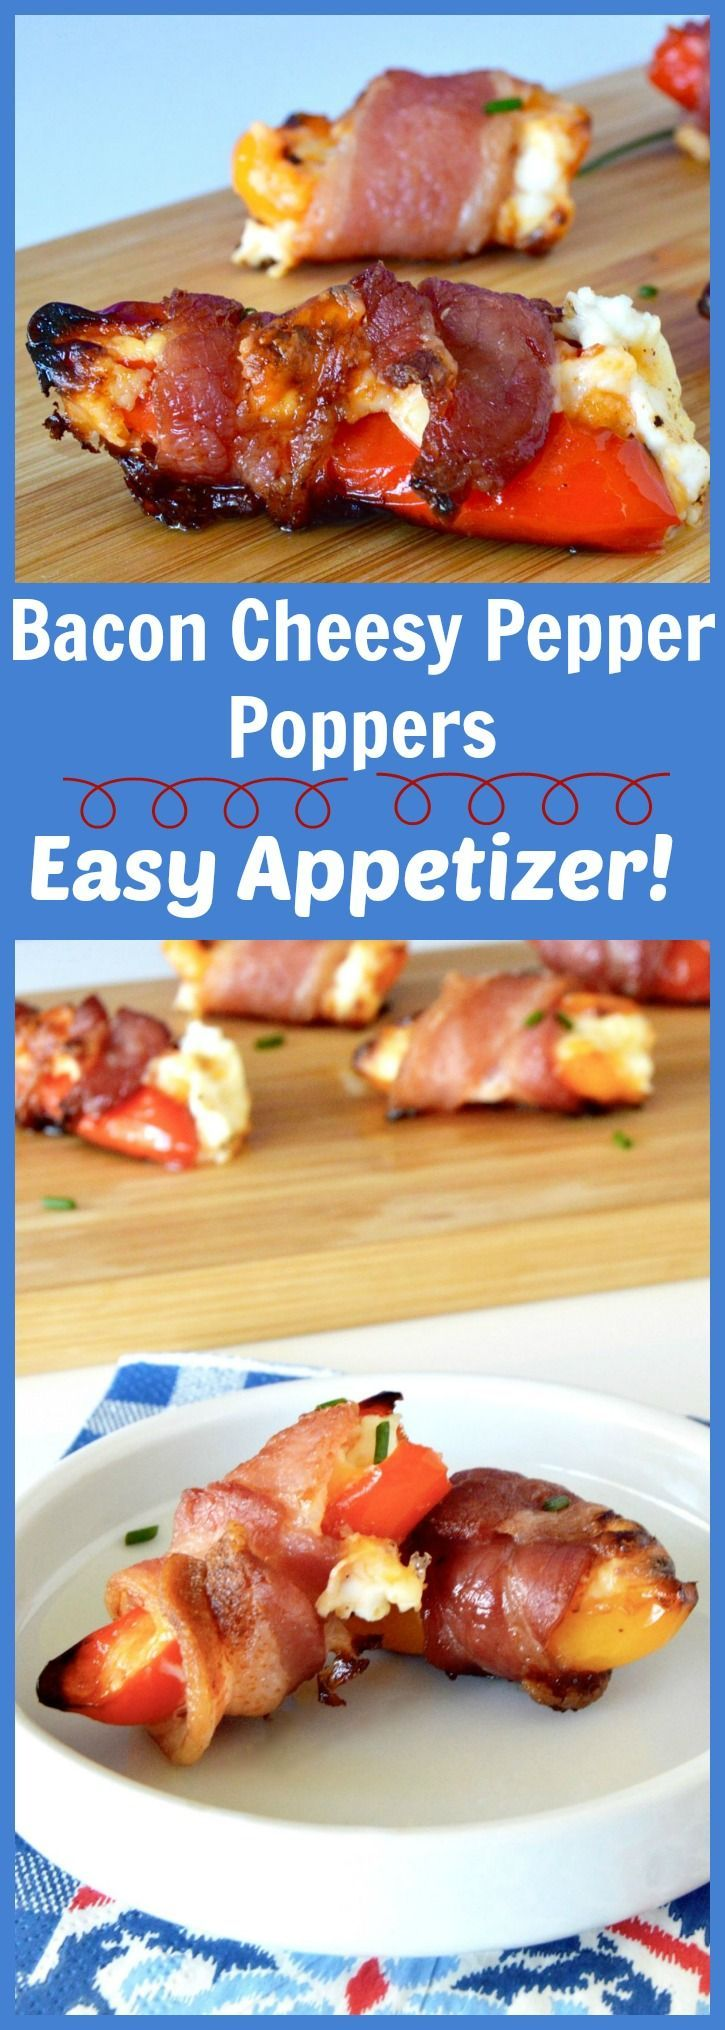 Bacon Cheese Pepper Poppers | Recipe | Pepper Poppers, Bacon and ...